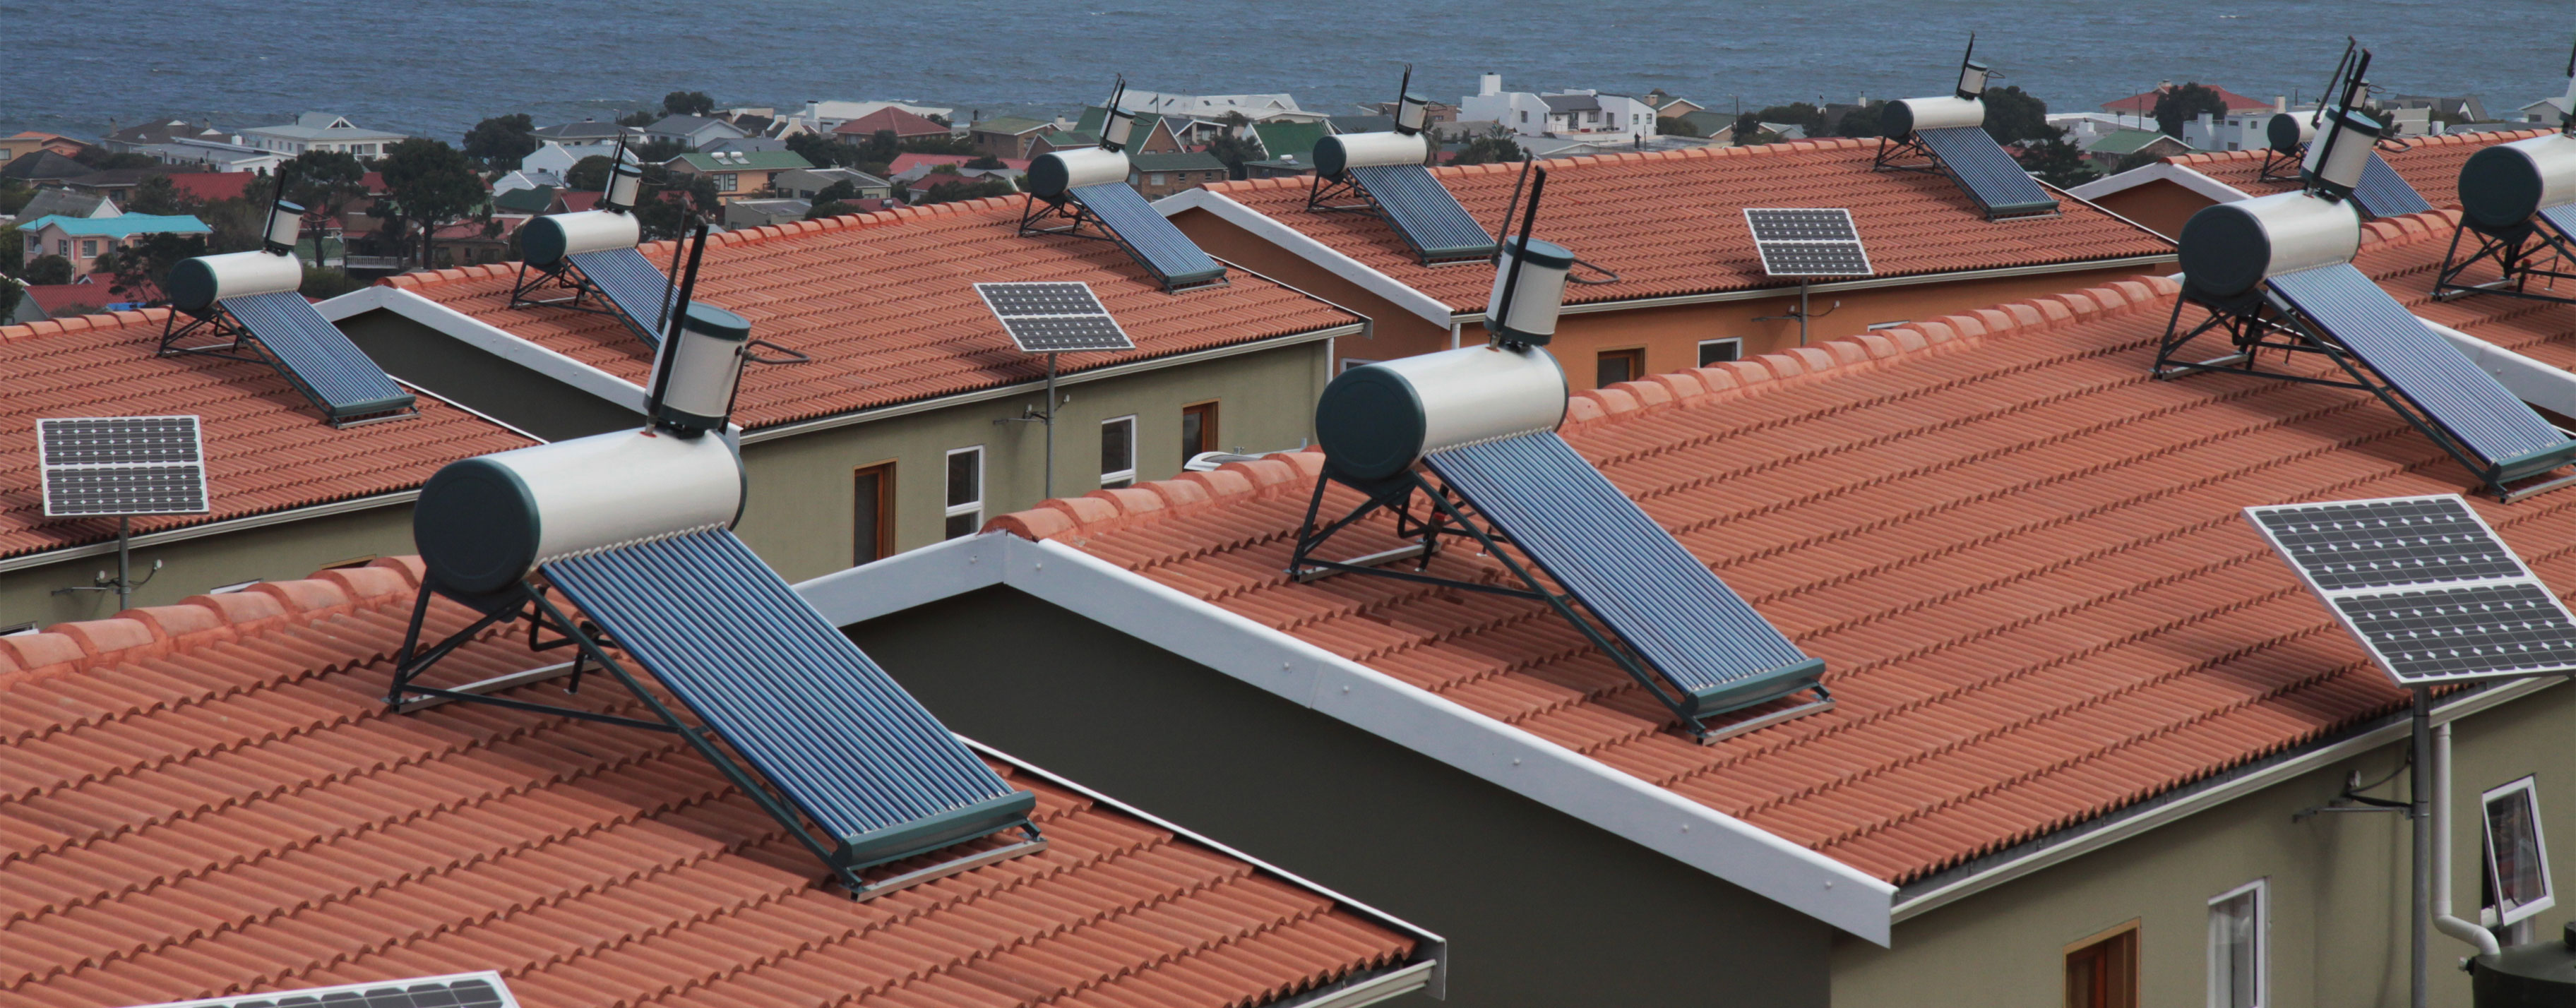 Solar water heating regulations take effect